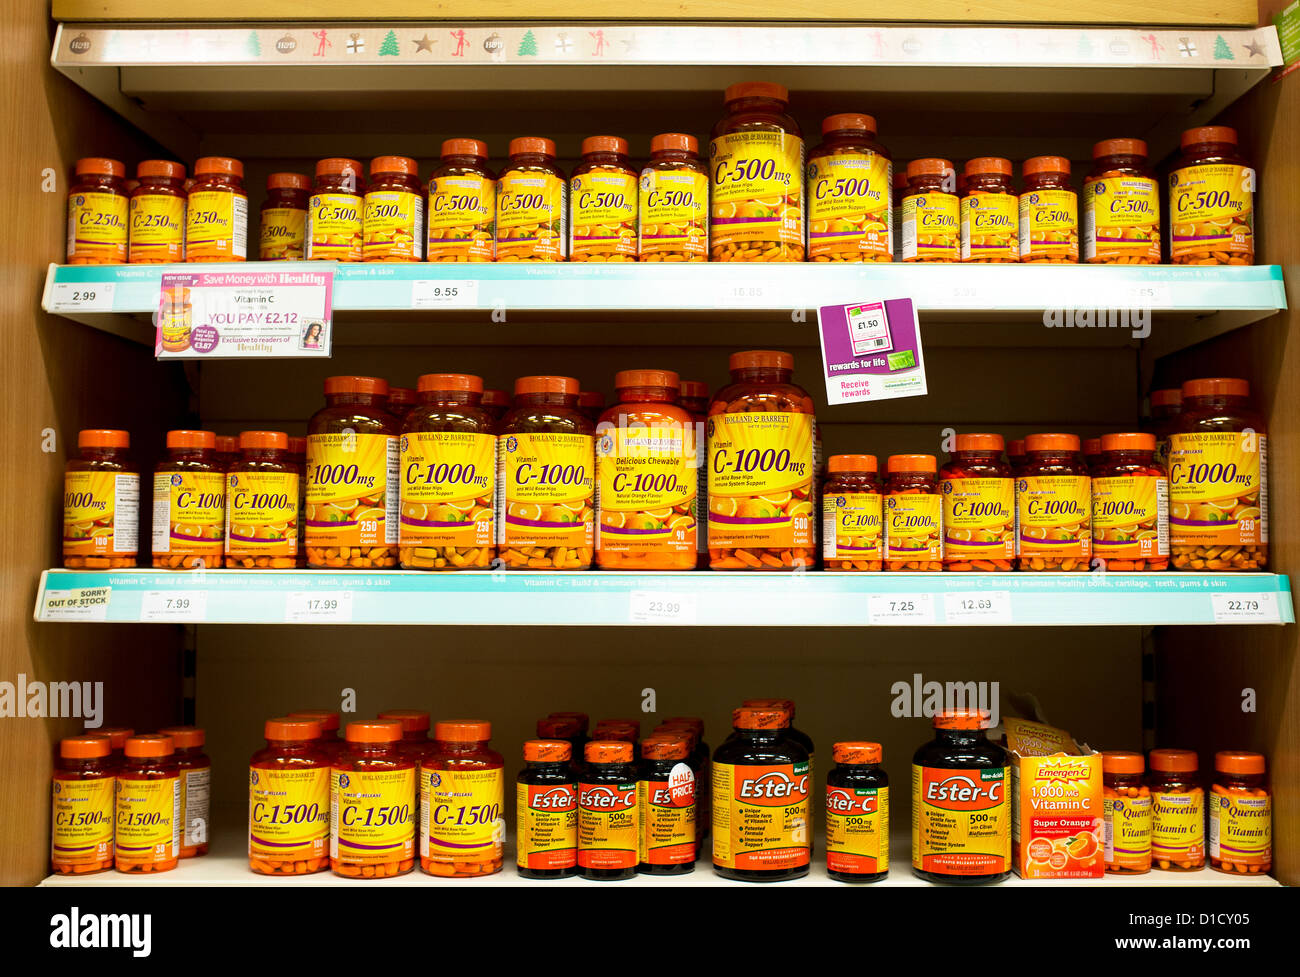 Shelves Full Of Containers Vitamin C Tablets Stock Photo